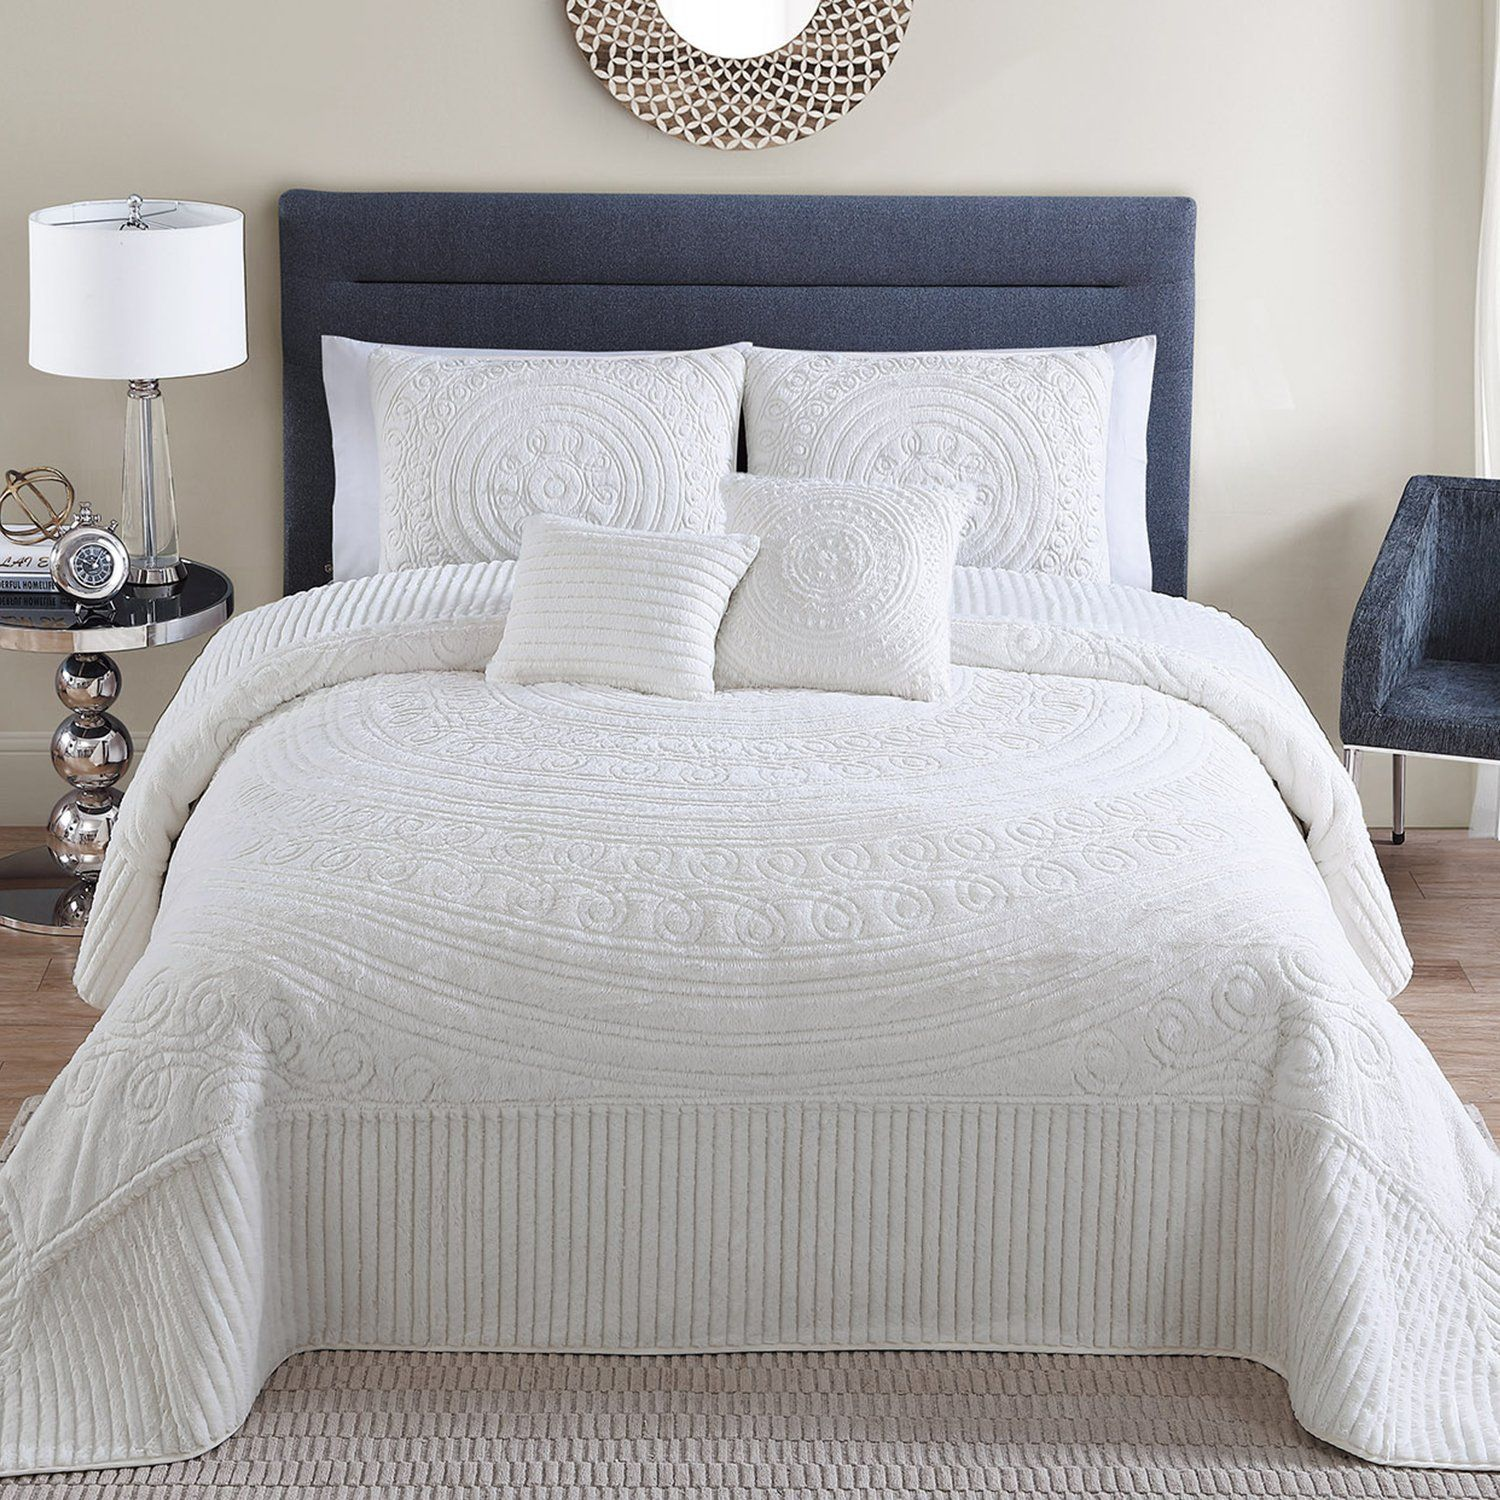 Boho Chic Bedding Sets with More